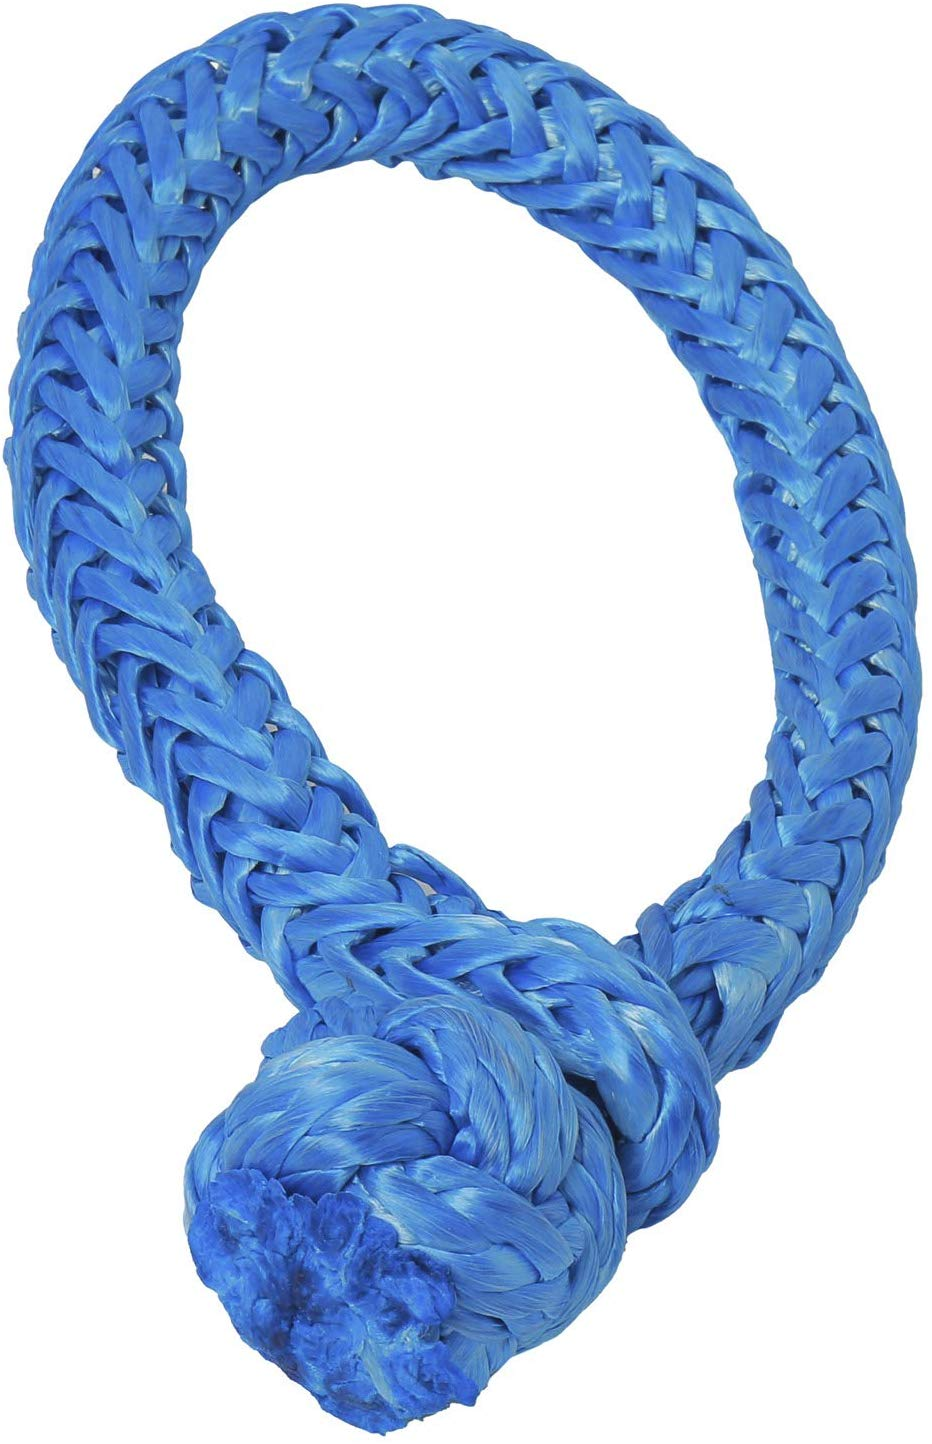 NovelBee 2 Pack of Soft Shackles,UHWMPE 12 Strand Synthetic Rope,Inner core Dia:10mm;Bow Width:150mm Grey